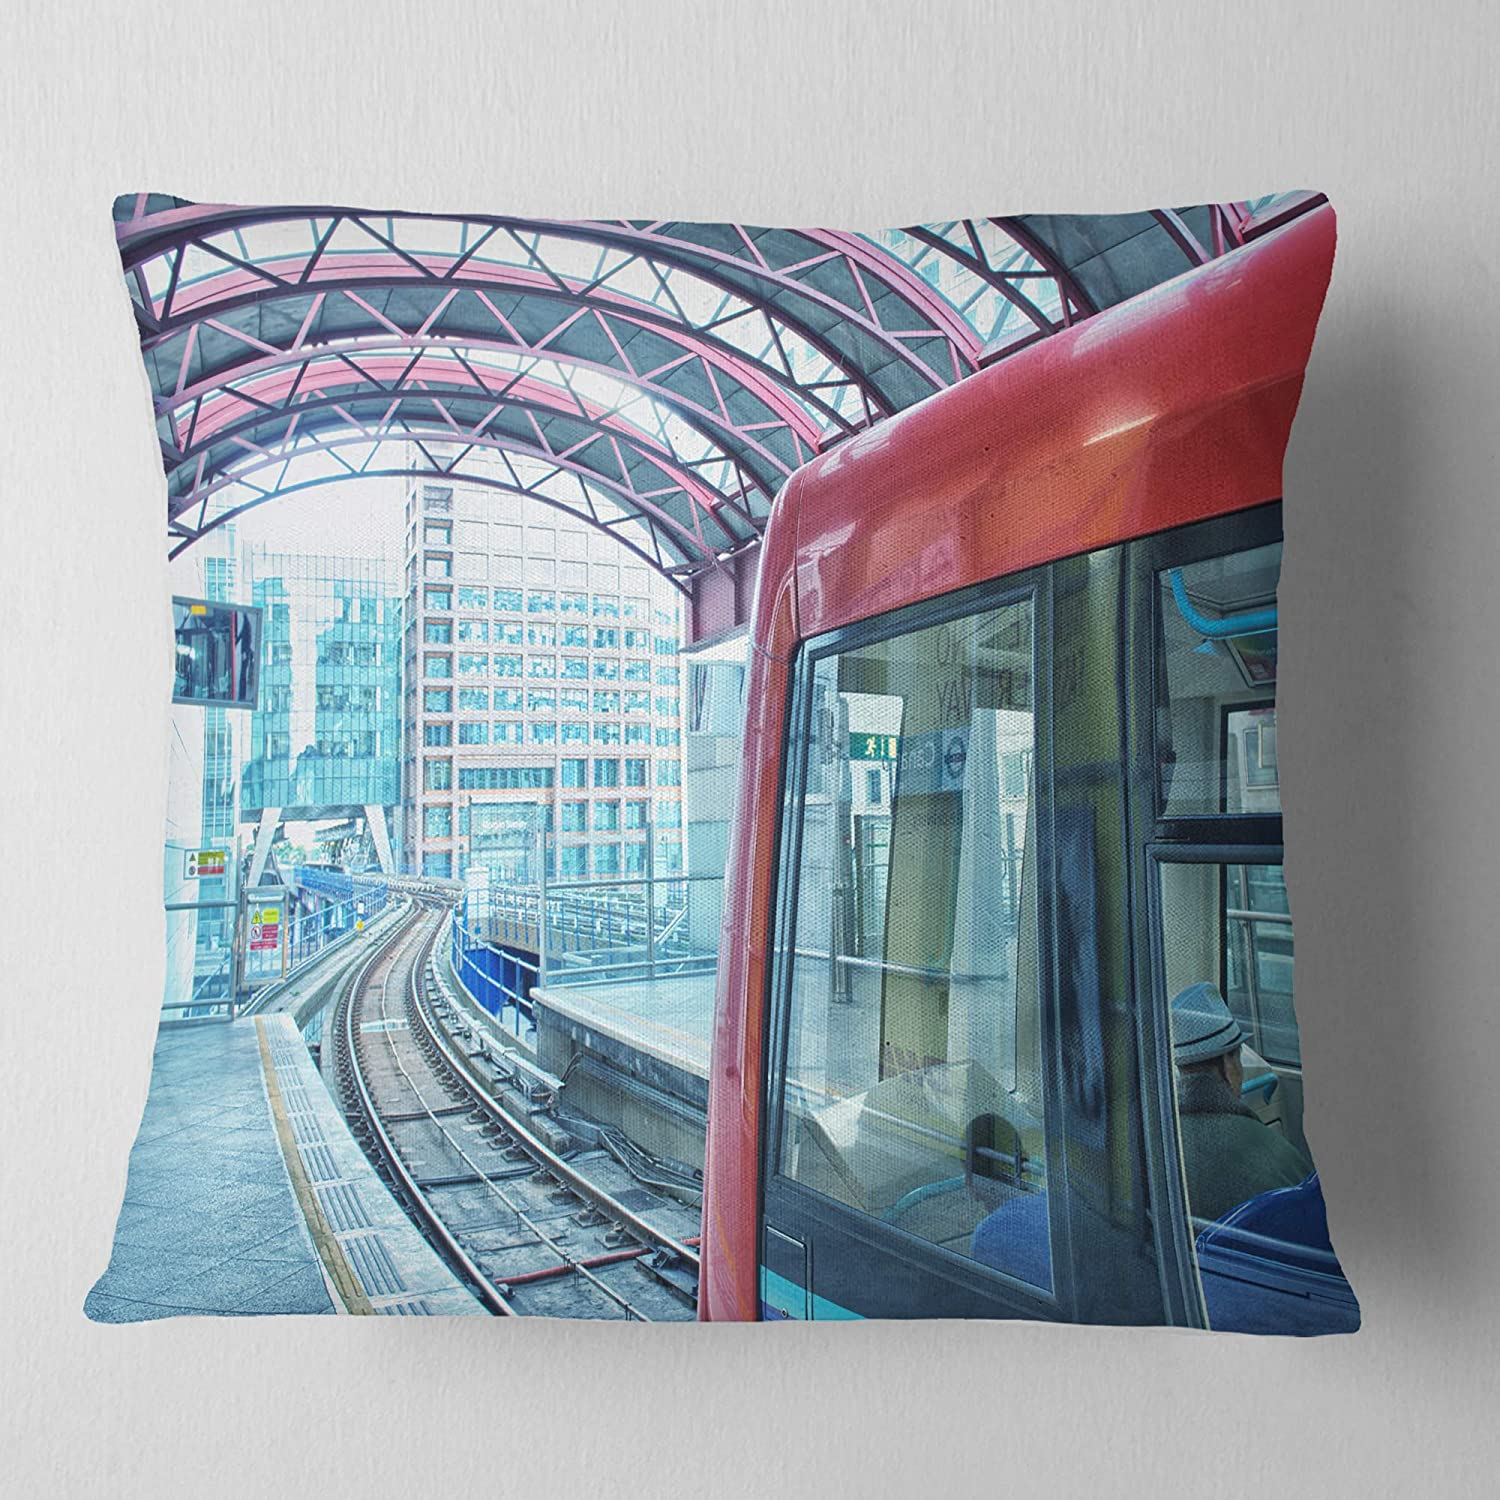 26 in Insert Printed On Both Side Sofa Throw Pillow x 26 in in Designart CU14332-26-26 Departing London Subway Train Modern Cityscape Cushion Cover for Living Room